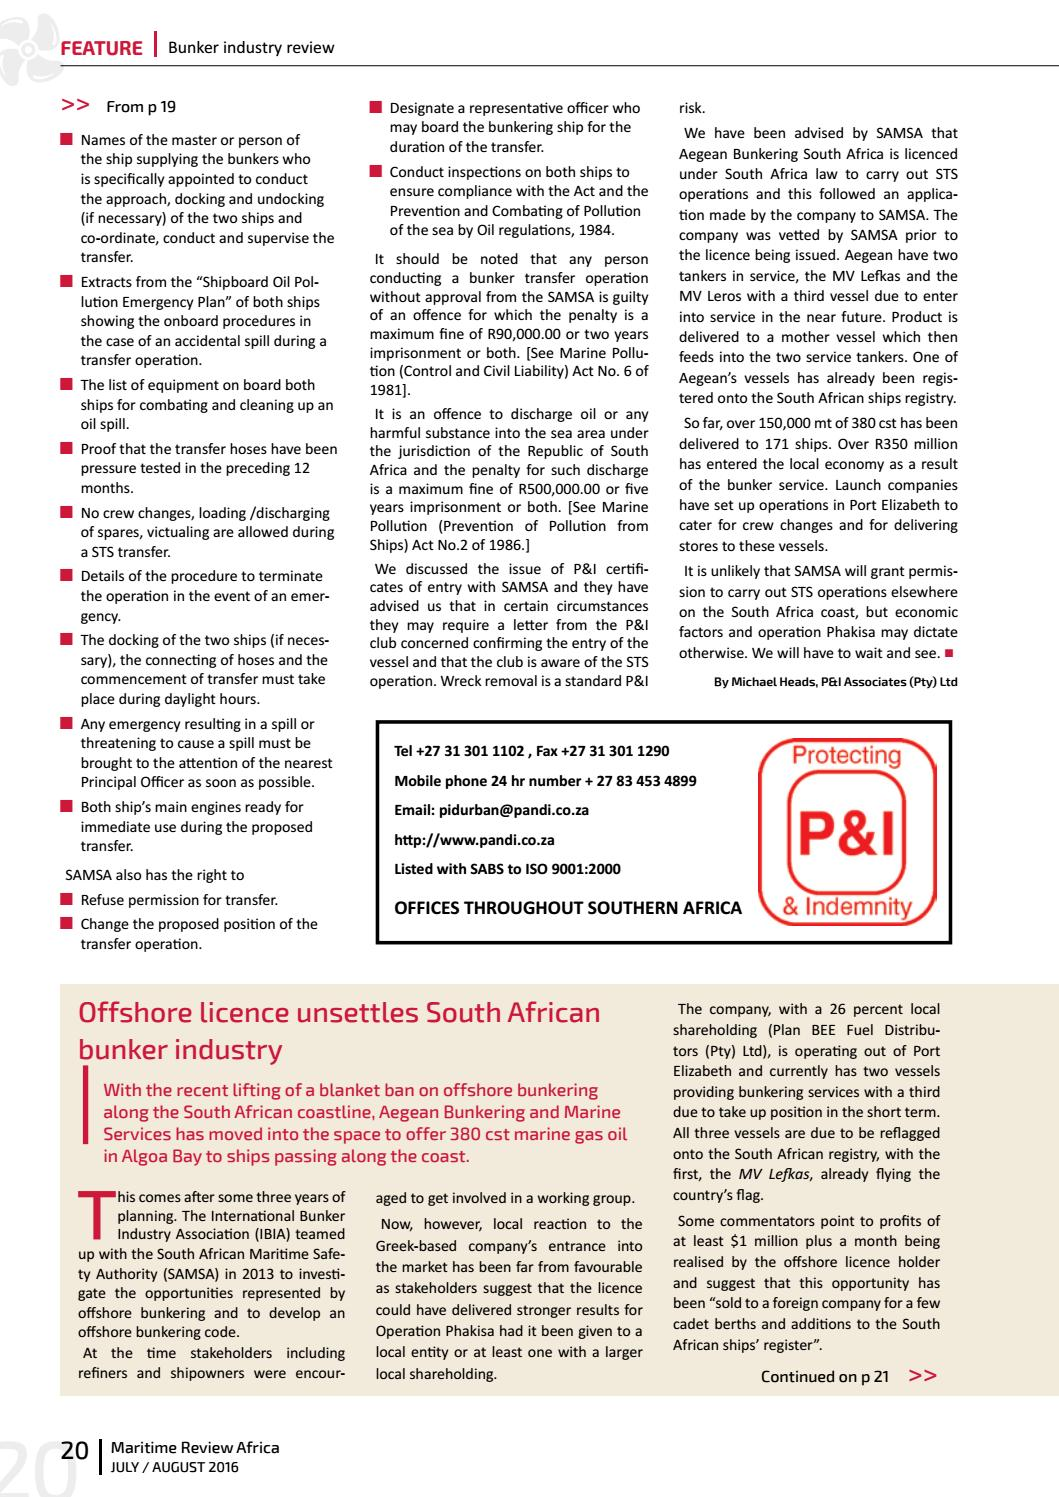 Maritime review africa julyaugust 2016 by more maximum media issuu xflitez Choice Image